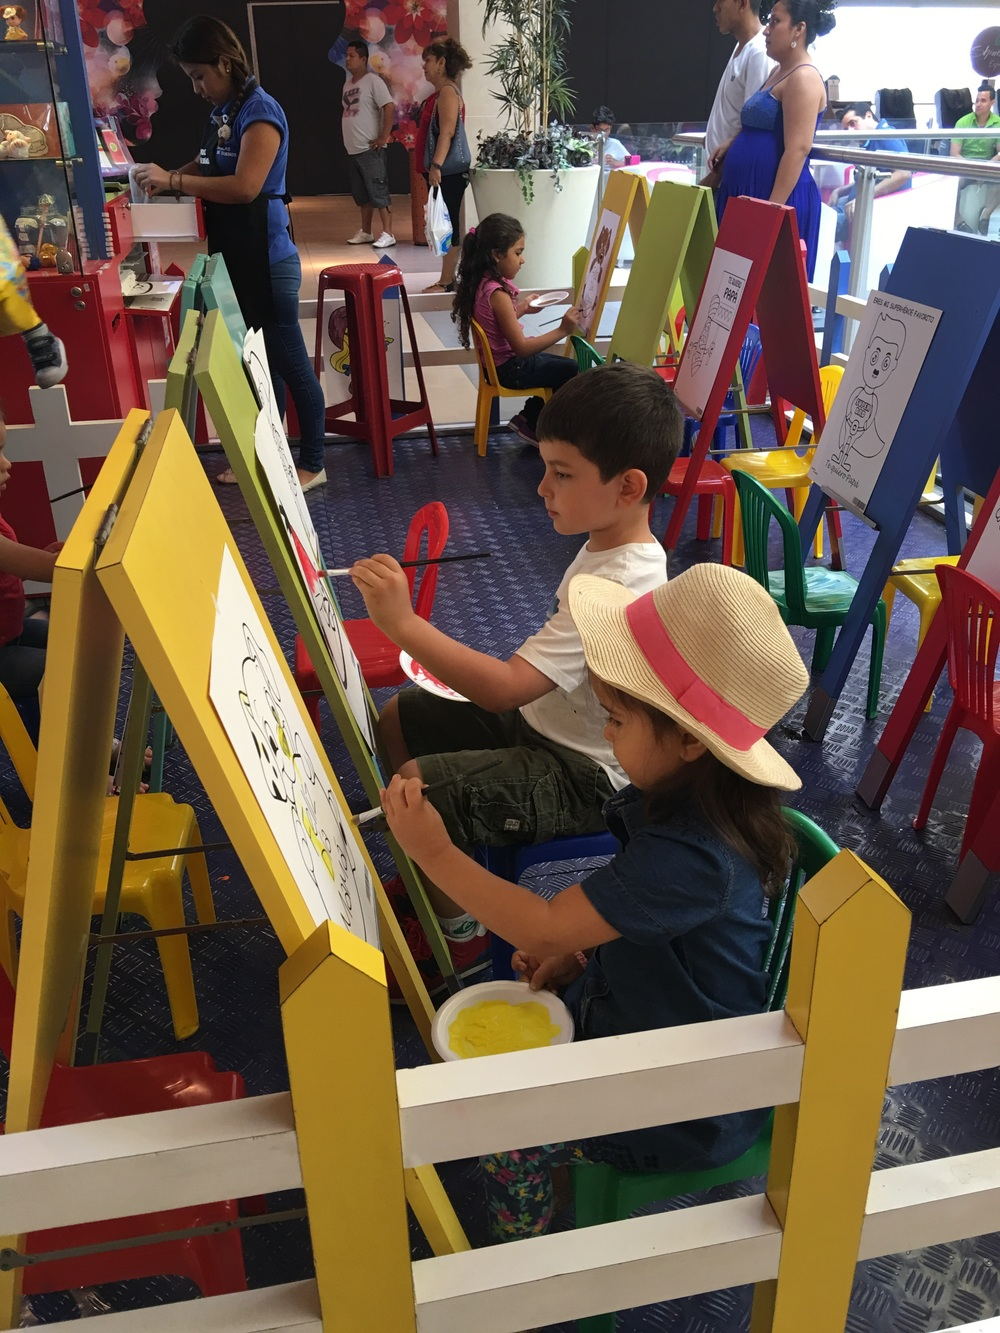 A sweet spot we found for the kids to paint in a local mall.